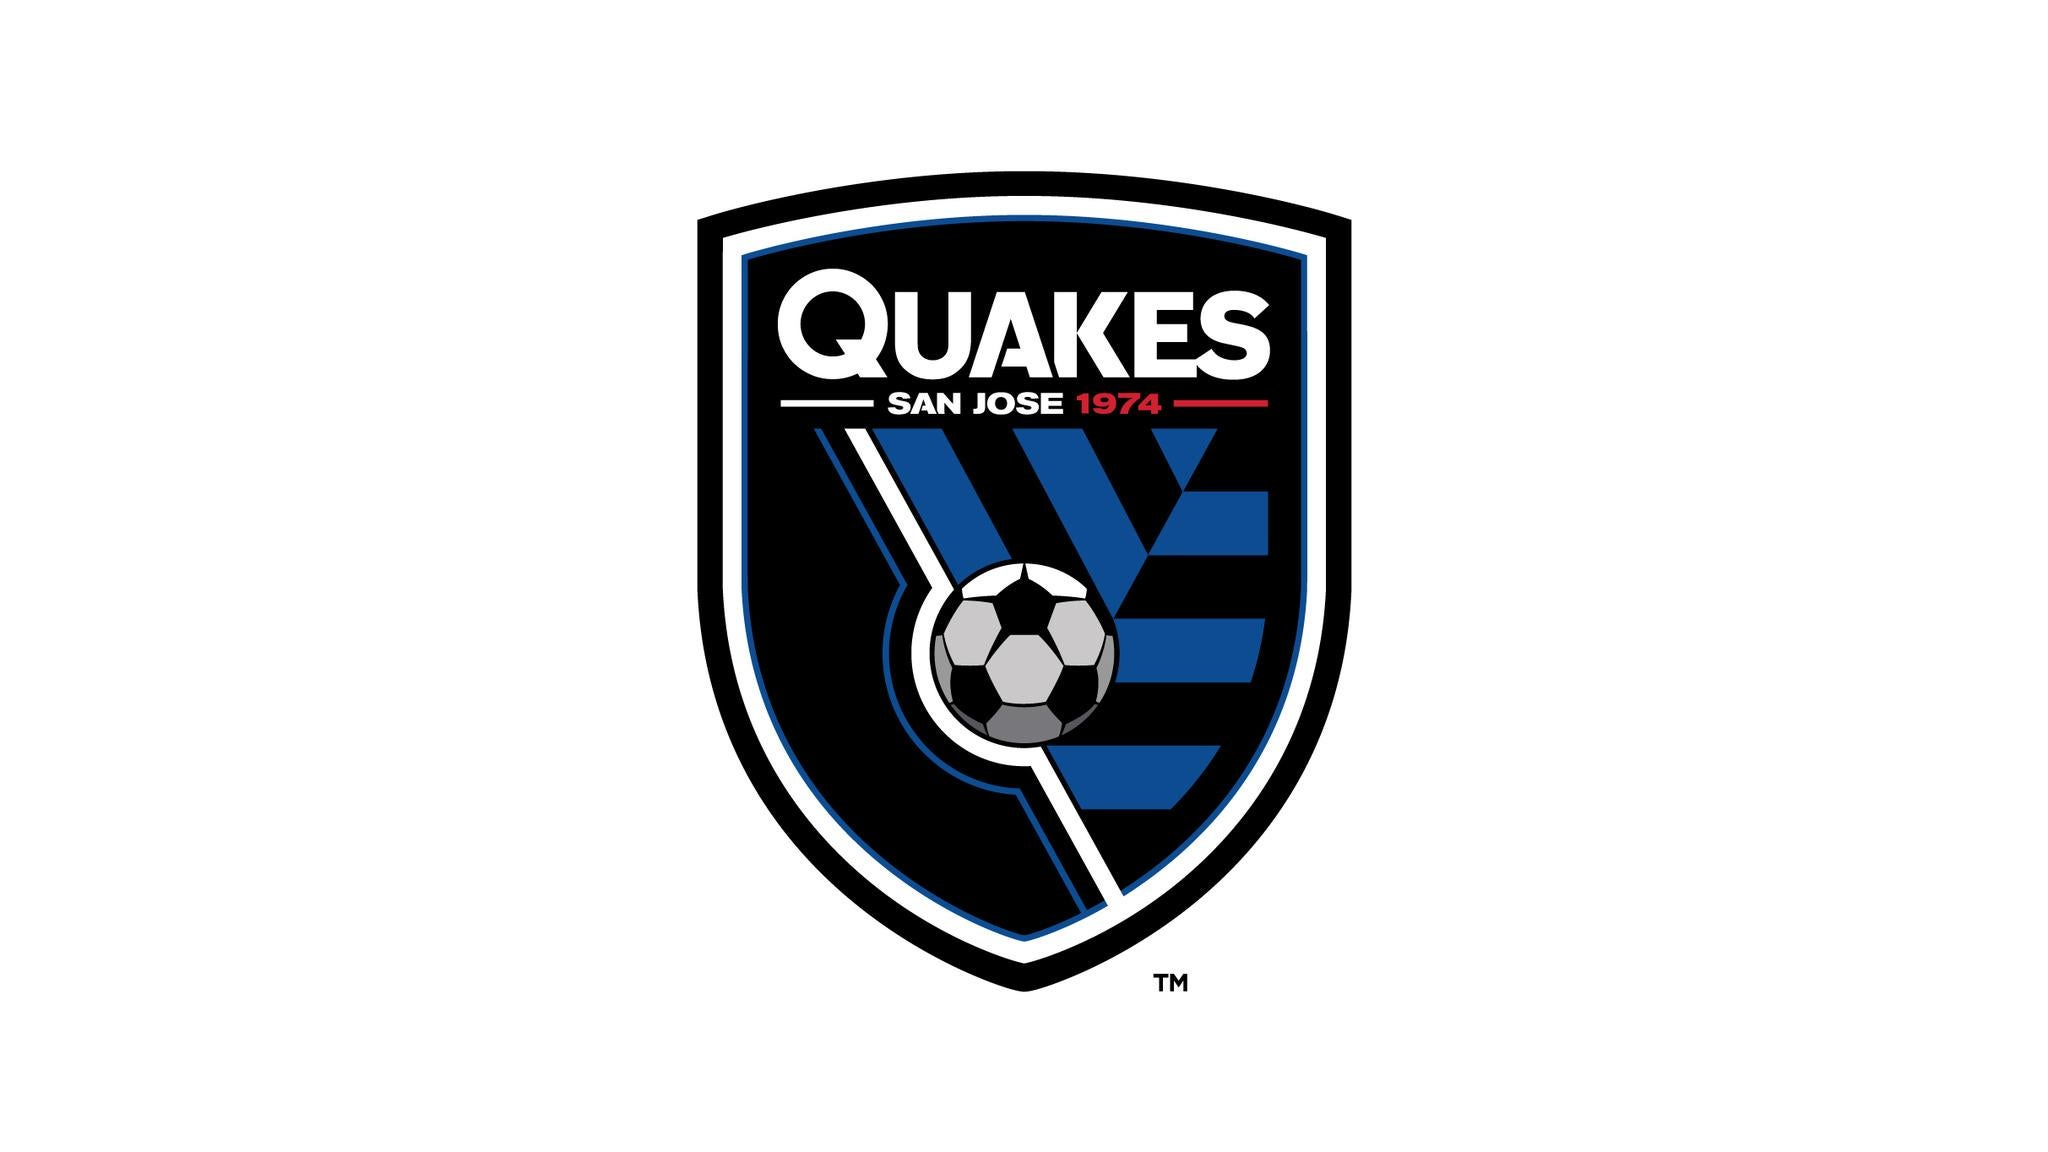 San Jose Earthquakes vs. Real Salt Lake at Avaya Stadium